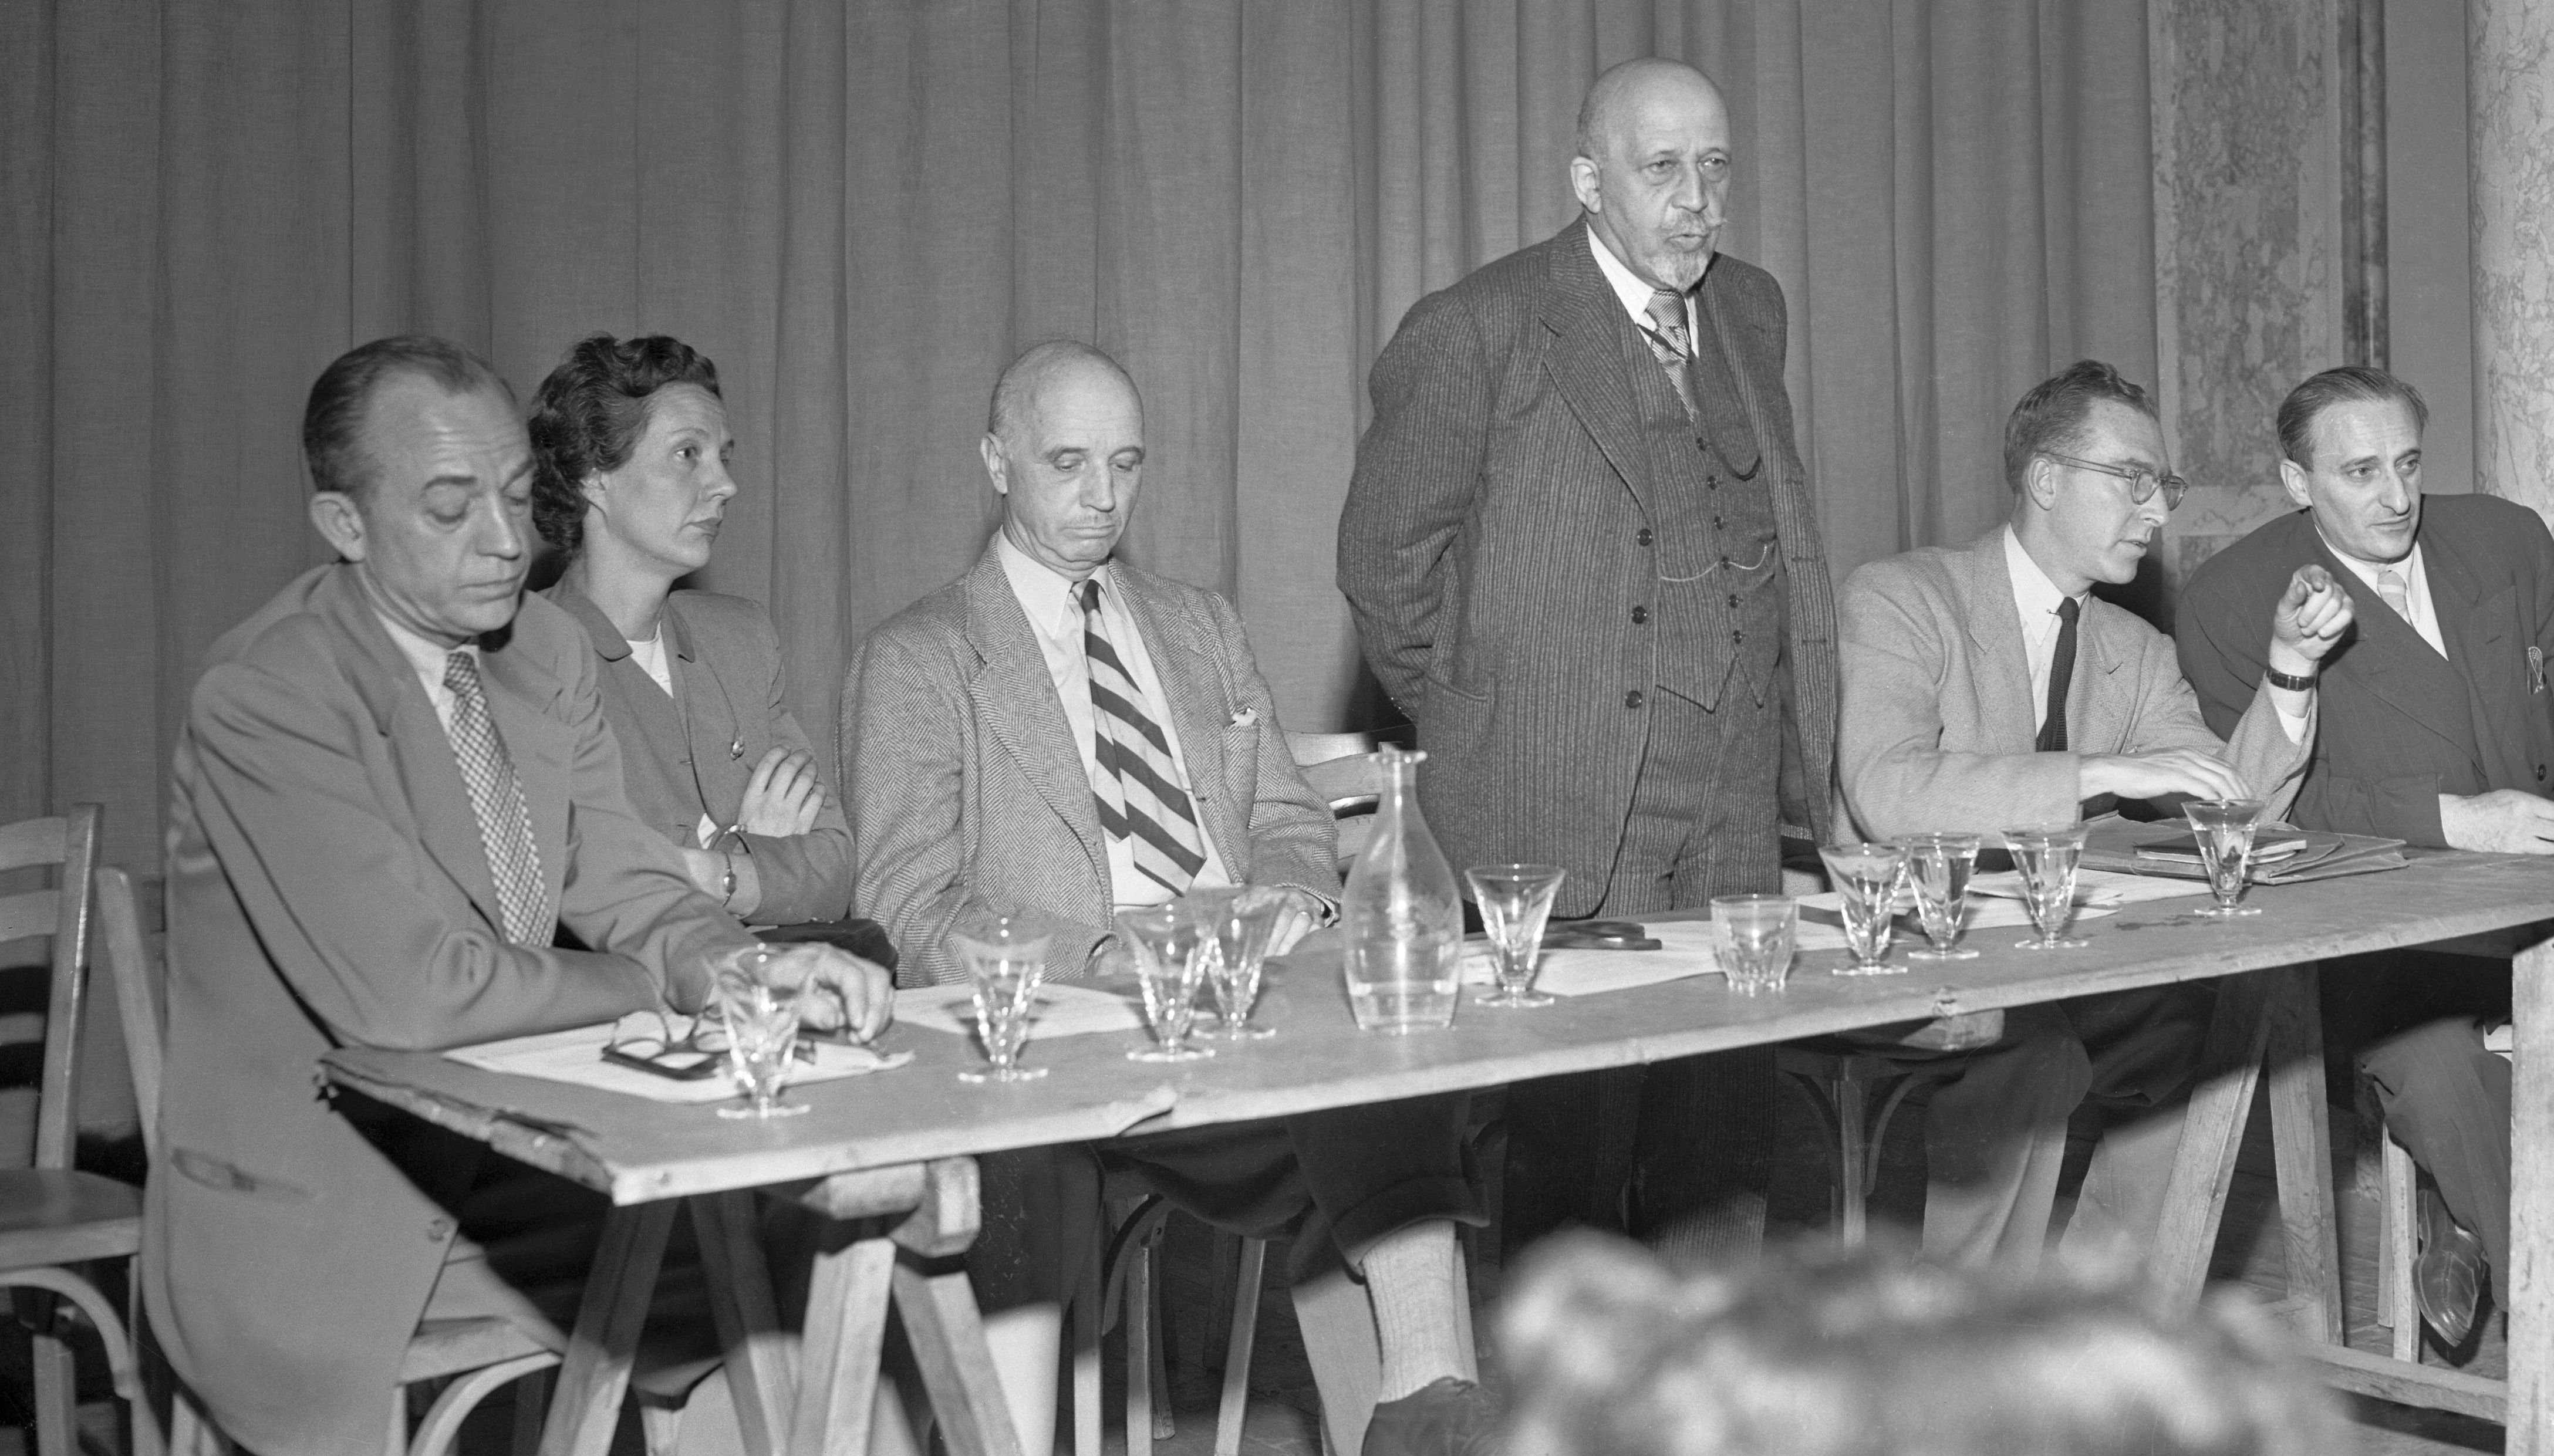 W.E.B. Dubois Standing at Table